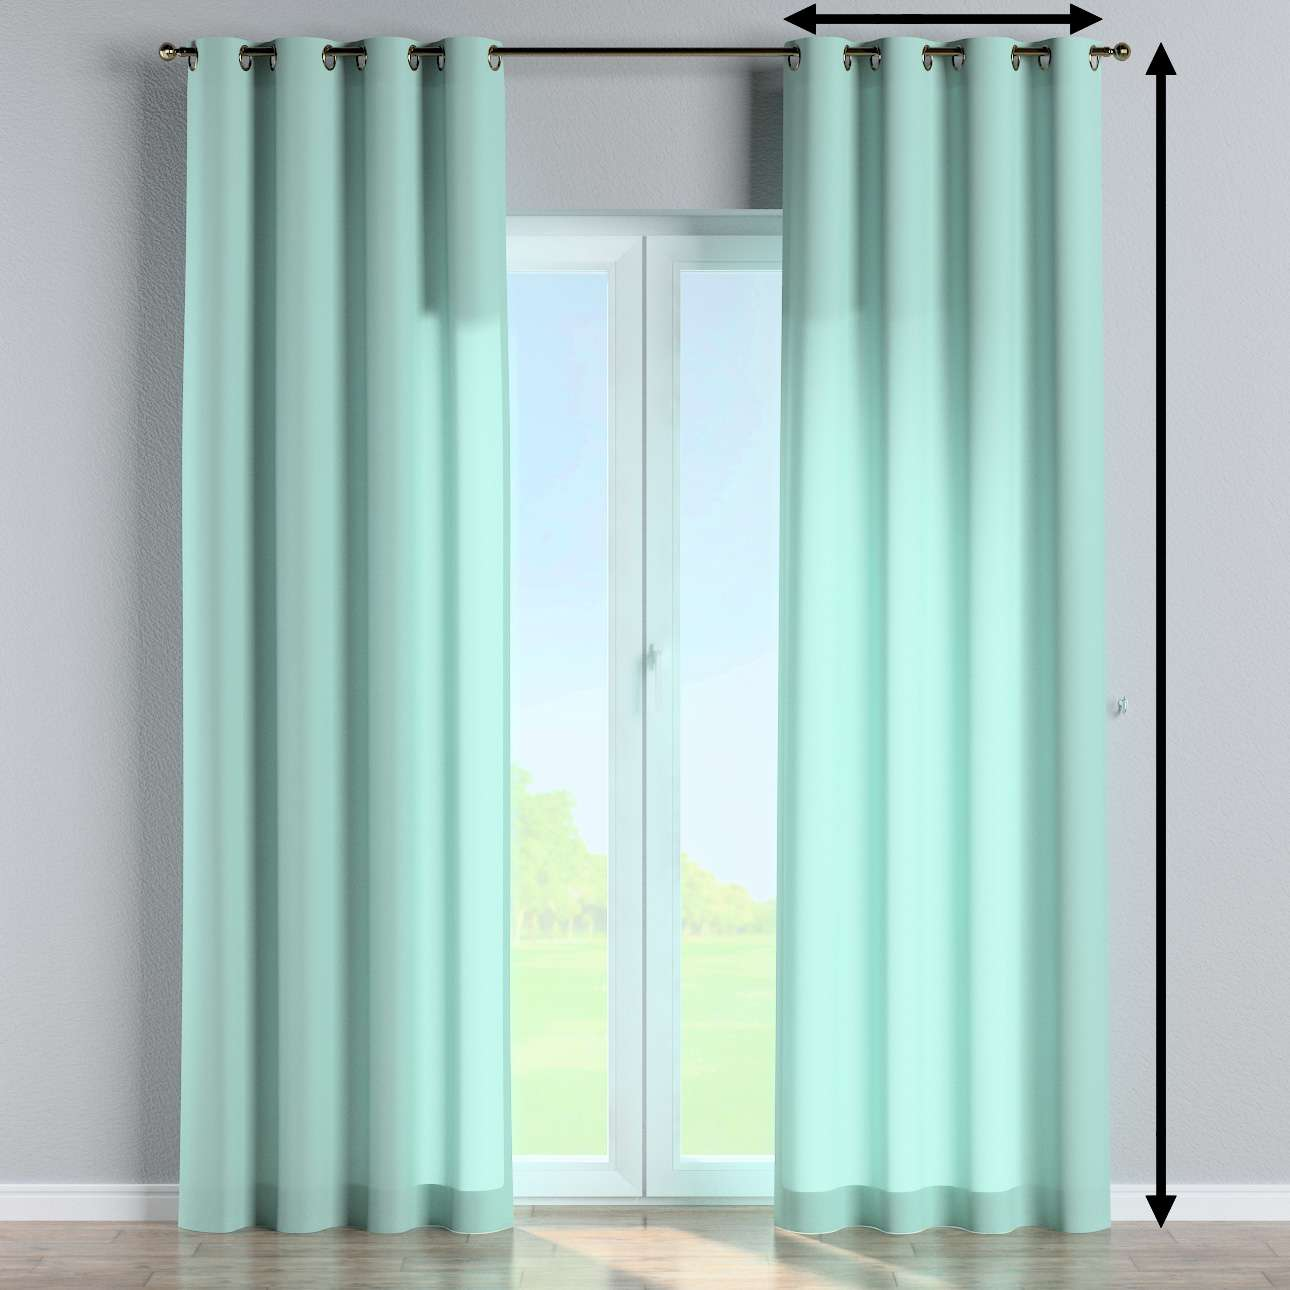 Eyelet curtain in collection Loneta , fabric: 133-32